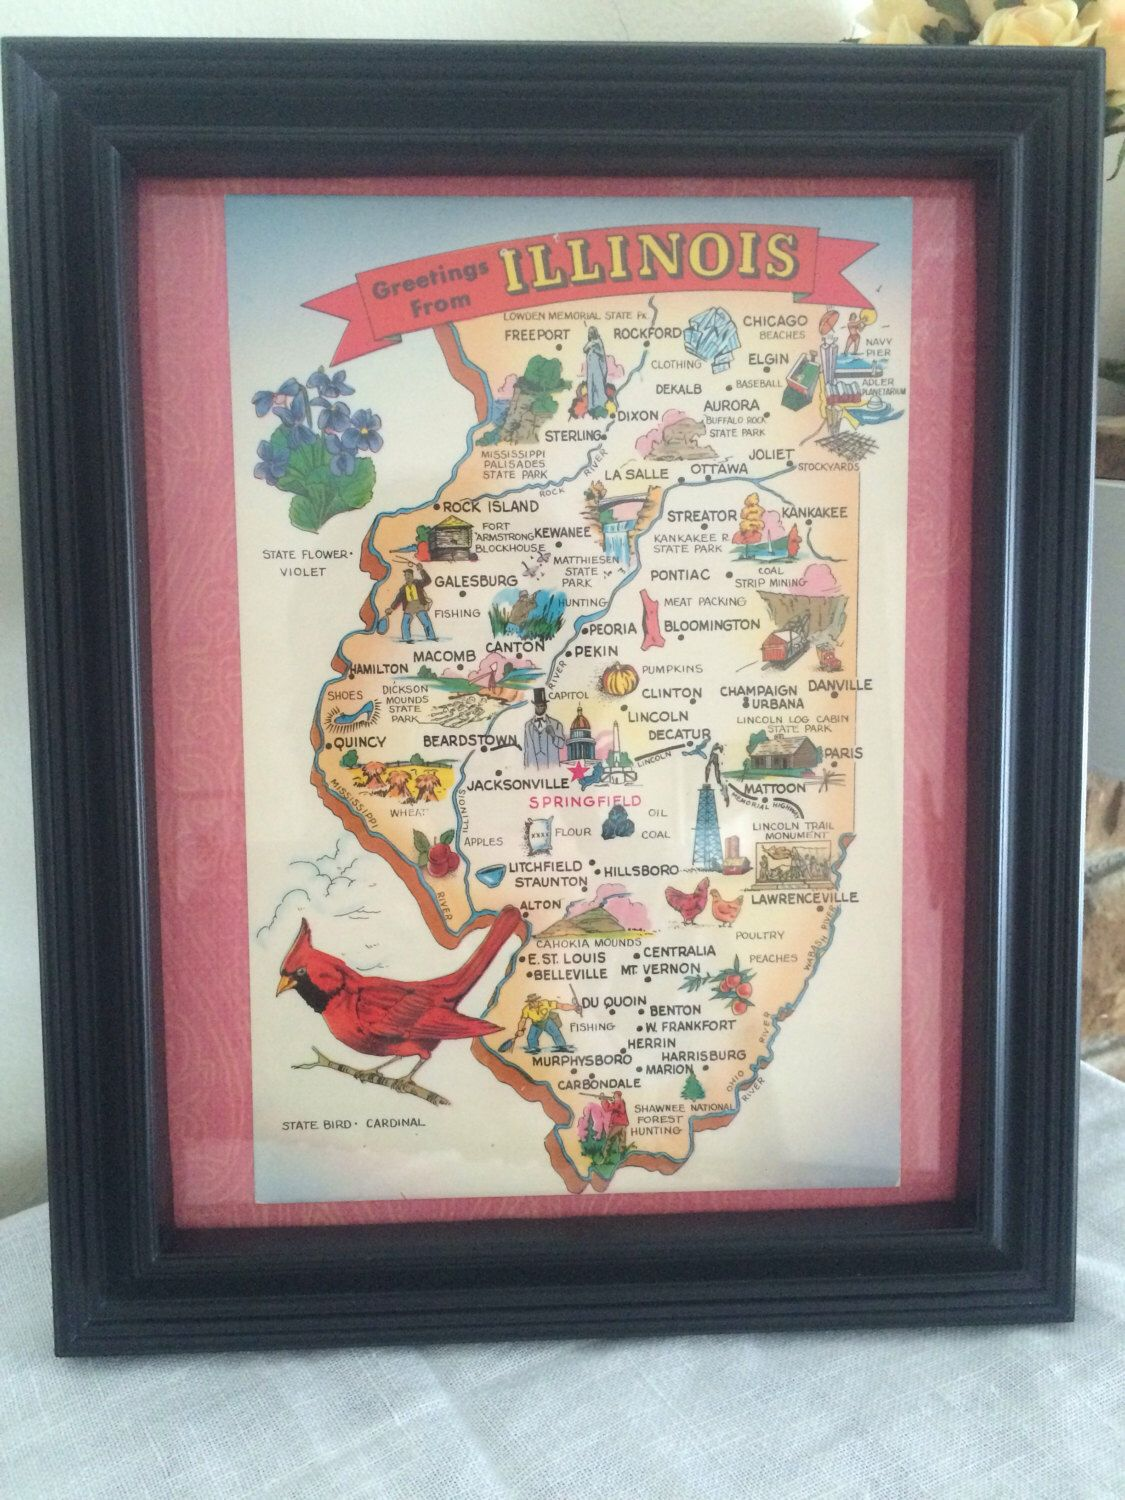 A personal favorite from my etsy shop httpsetsylisting beautifully whimsical vintage illinois map postcard from the made by the tichnor brothers lusterchrome postcard is framed for display gumiabroncs Gallery